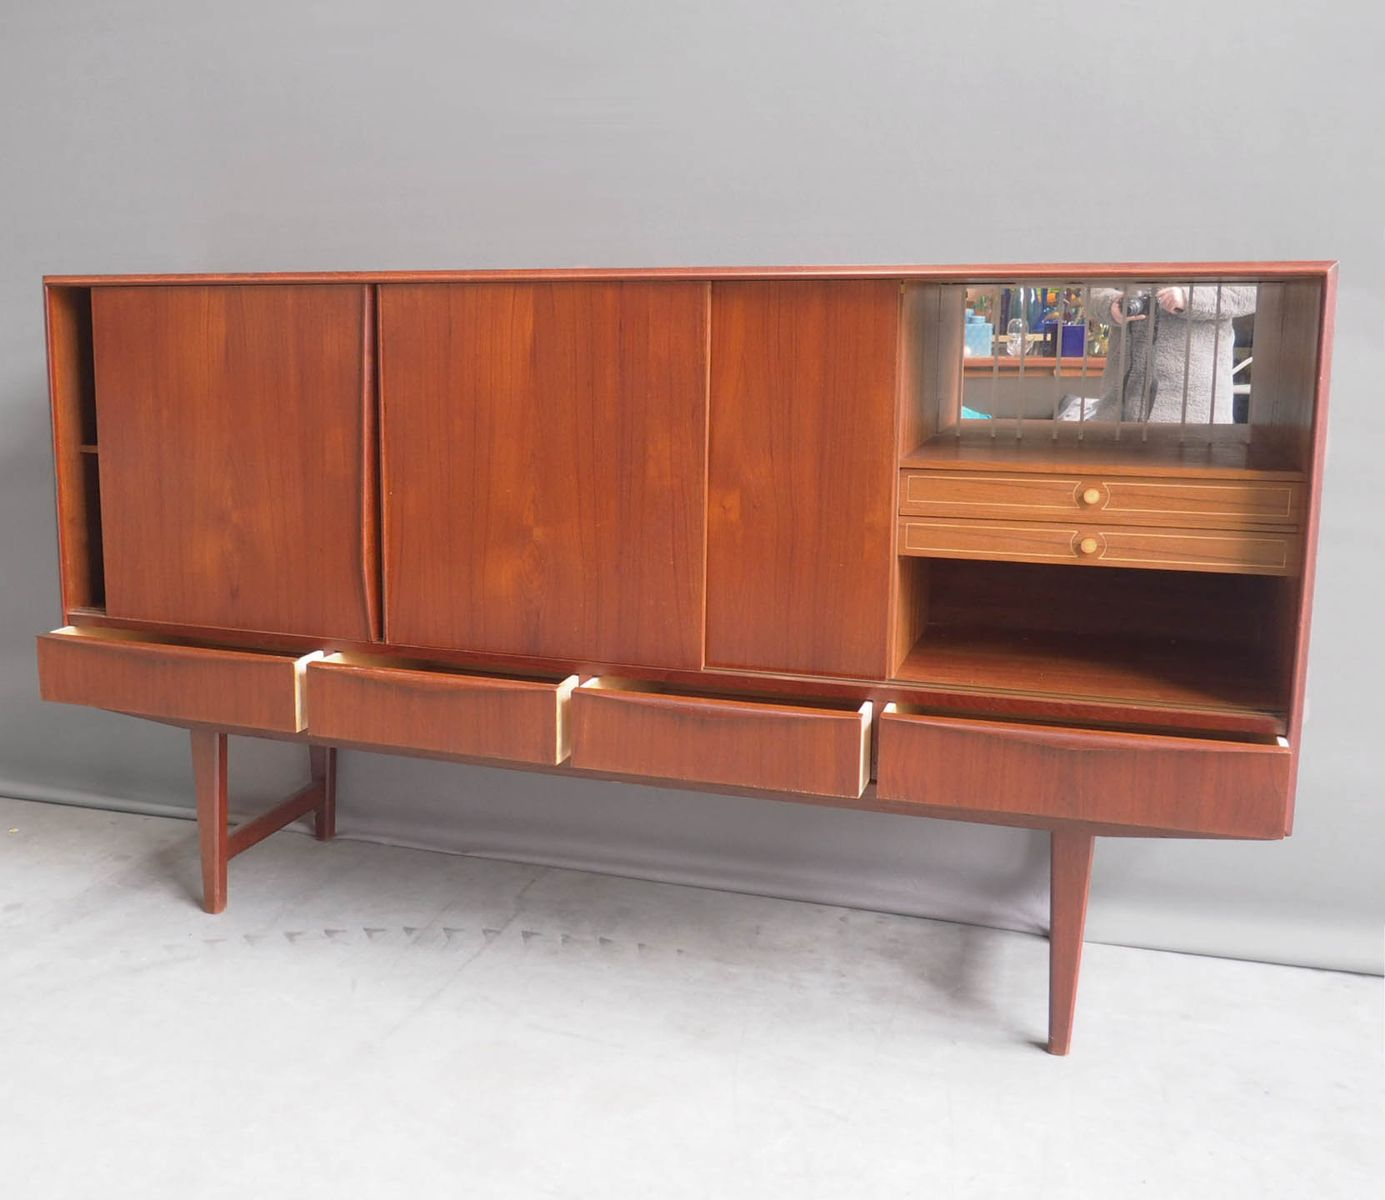 high teak sideboard by e w bach for sejling skabe 1960s for sale at pamono. Black Bedroom Furniture Sets. Home Design Ideas